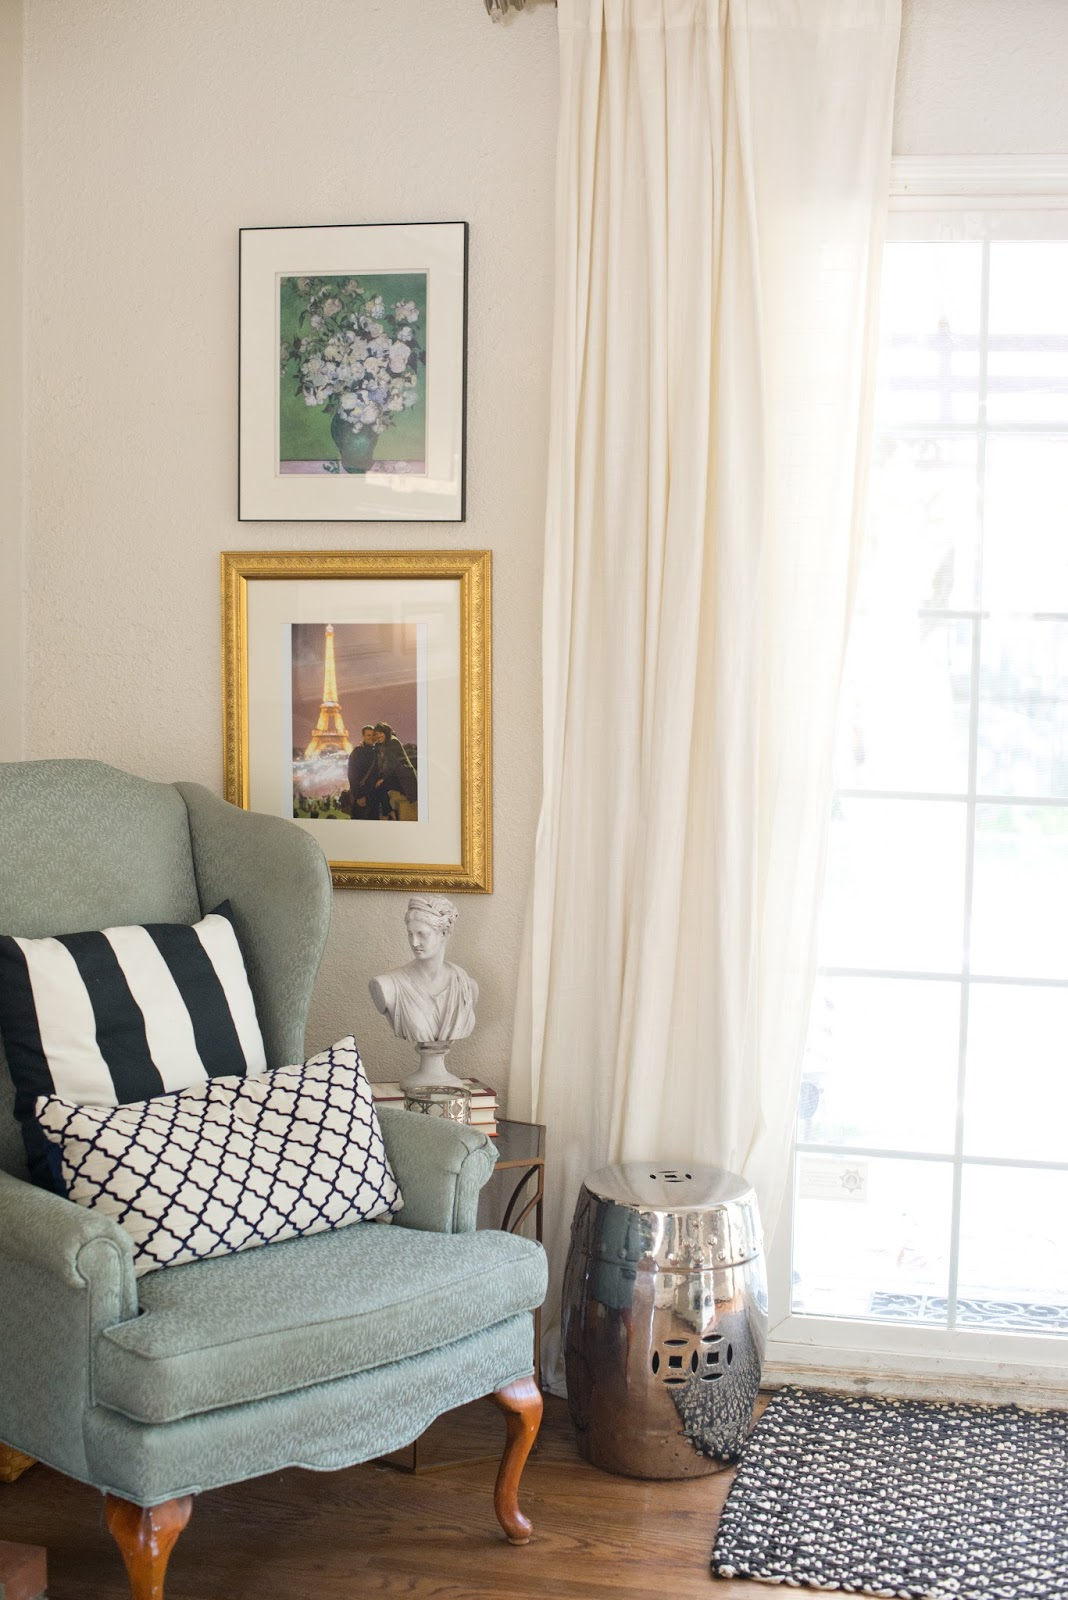 It Feels So Rewarding And A Good Lesson In Contentment To Use What I Have When Redecorating Can Be Frustrating Look At My Inspiration Photos On